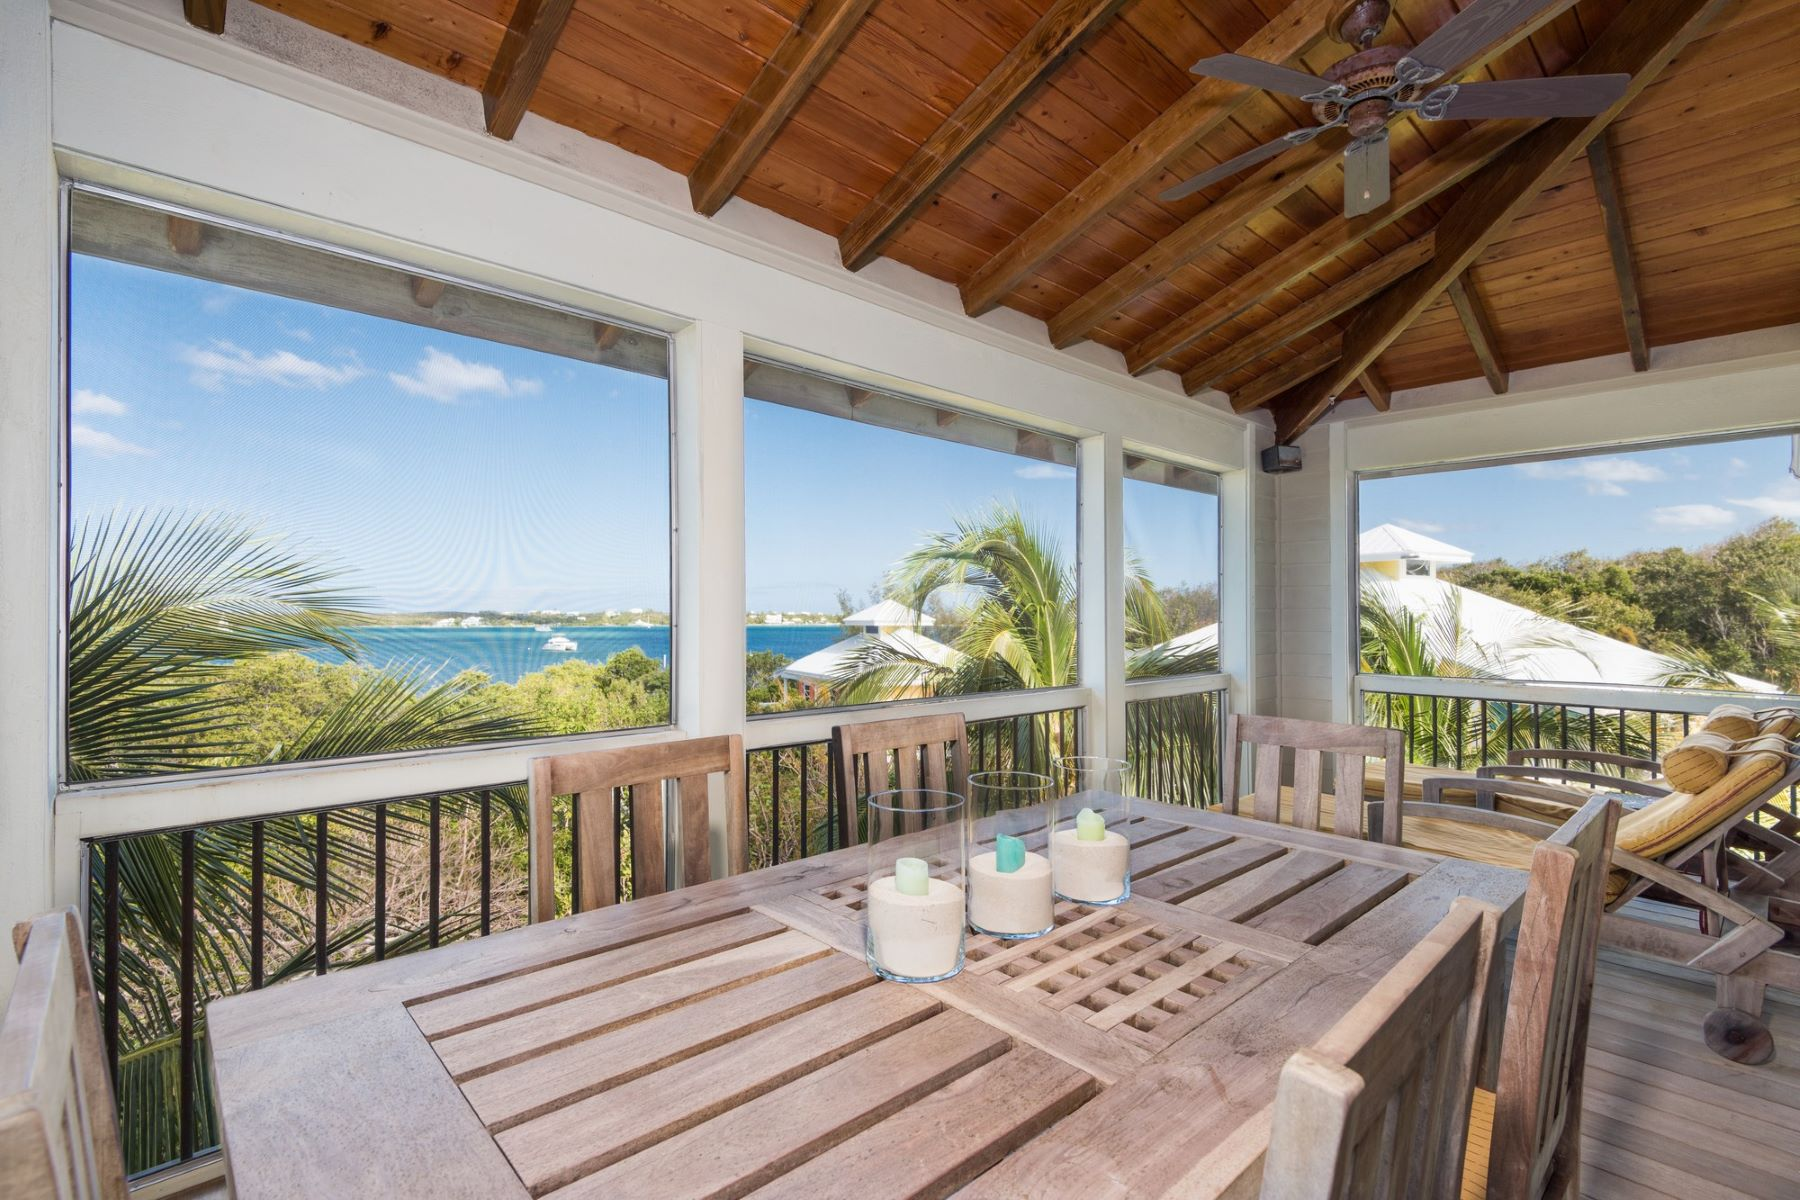 Single Family Home for Sale at Sandlapper Lubbers Quarters, Abaco Bahamas